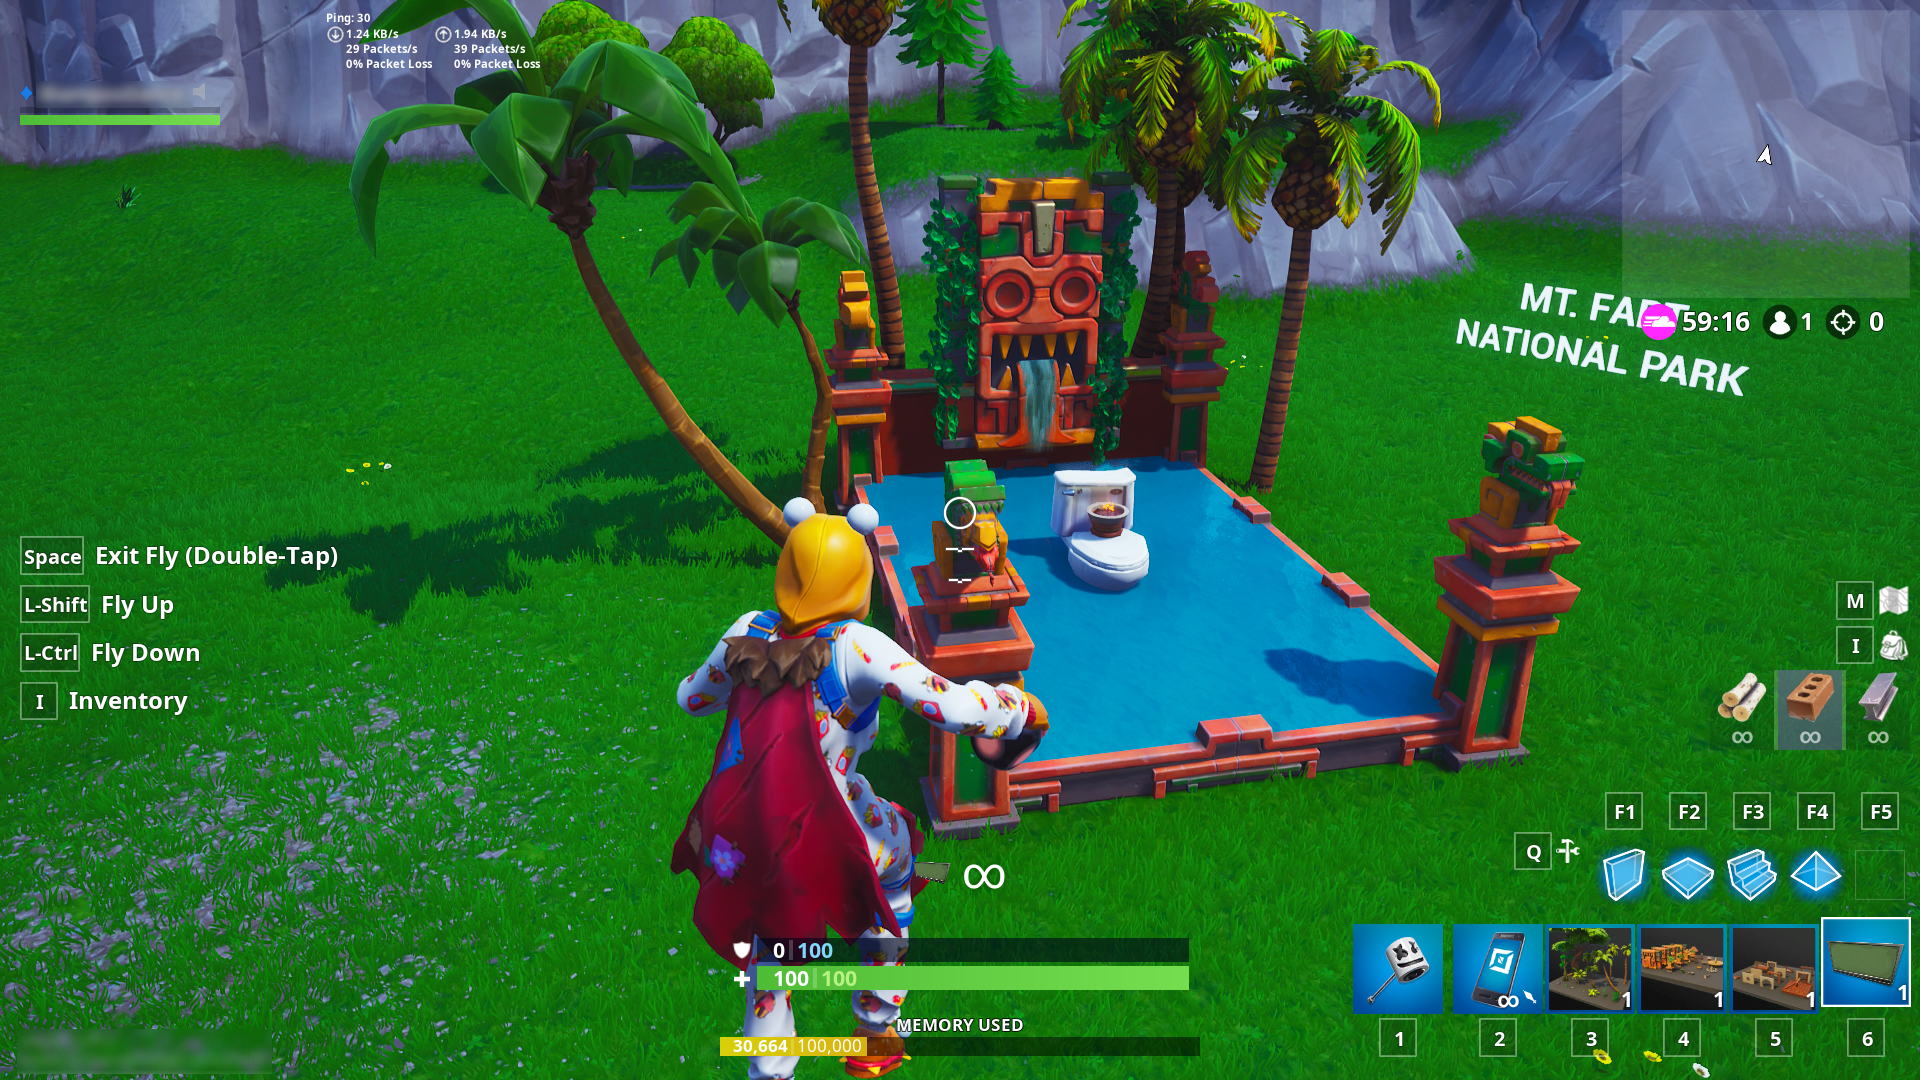 Fortnite Creative Mode Update v8 01: Water Cubes and Saved